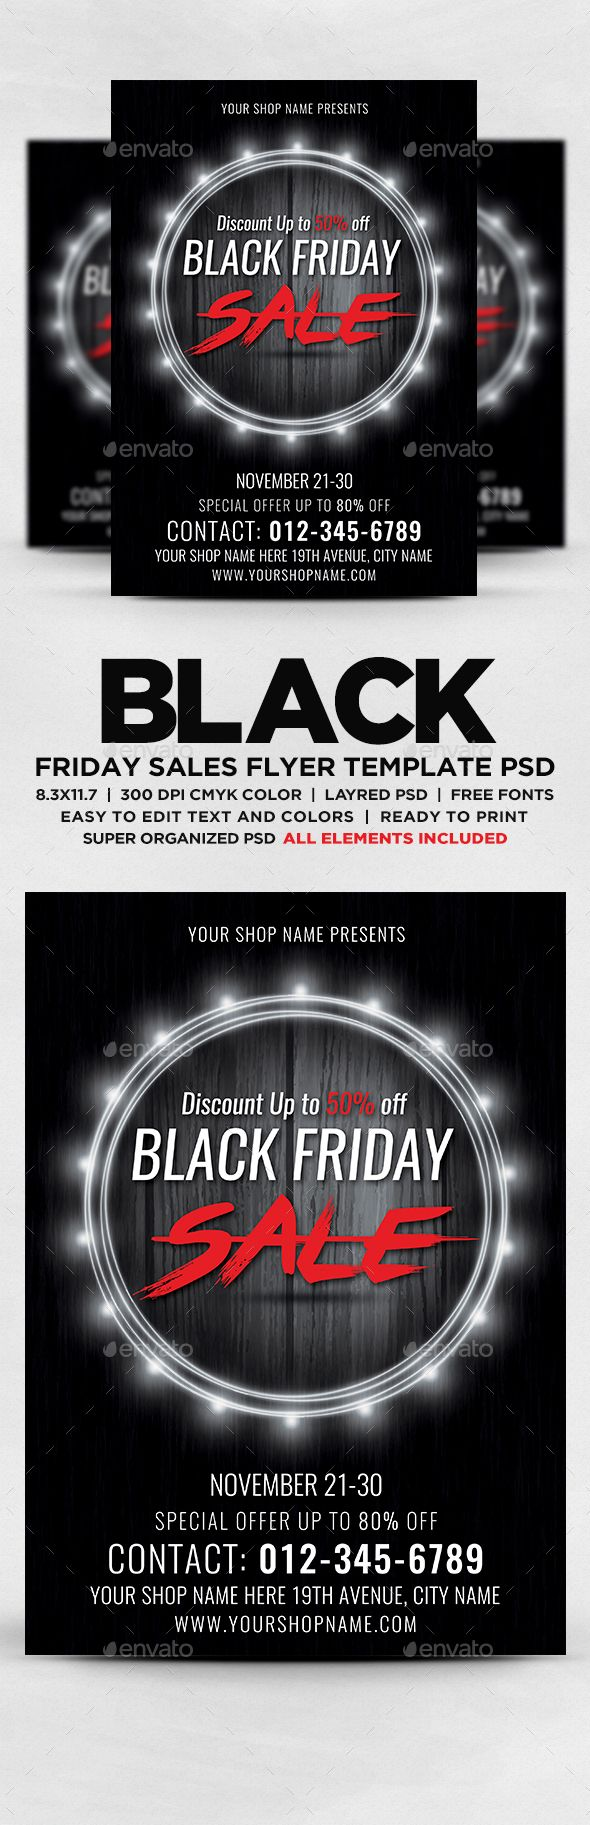 Black Friday Sales Flyer Flyers Print Templates Black